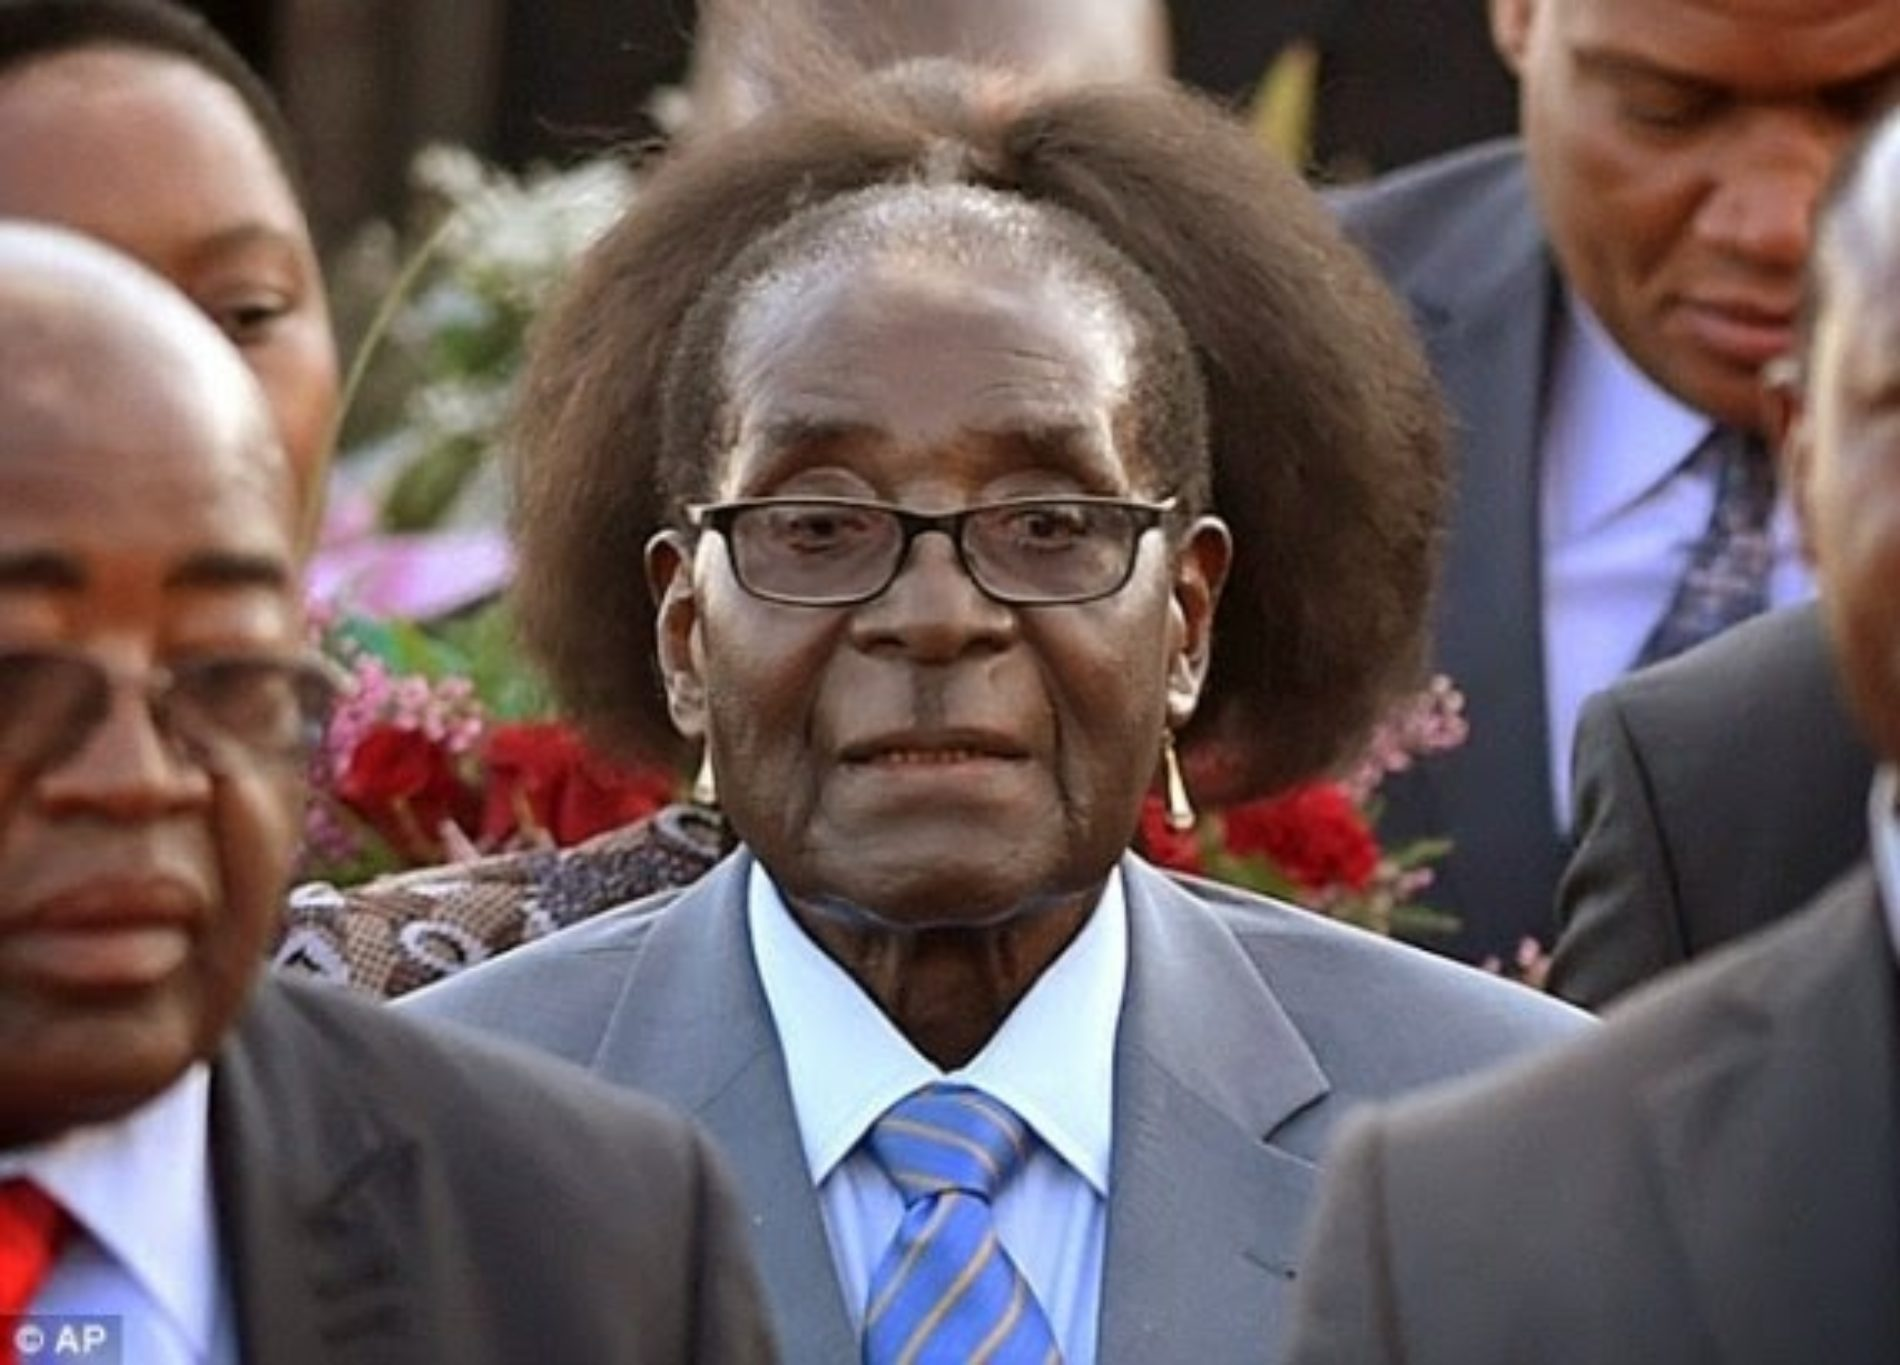 President Mugabe Probably Isn't Too Happy About This Photo